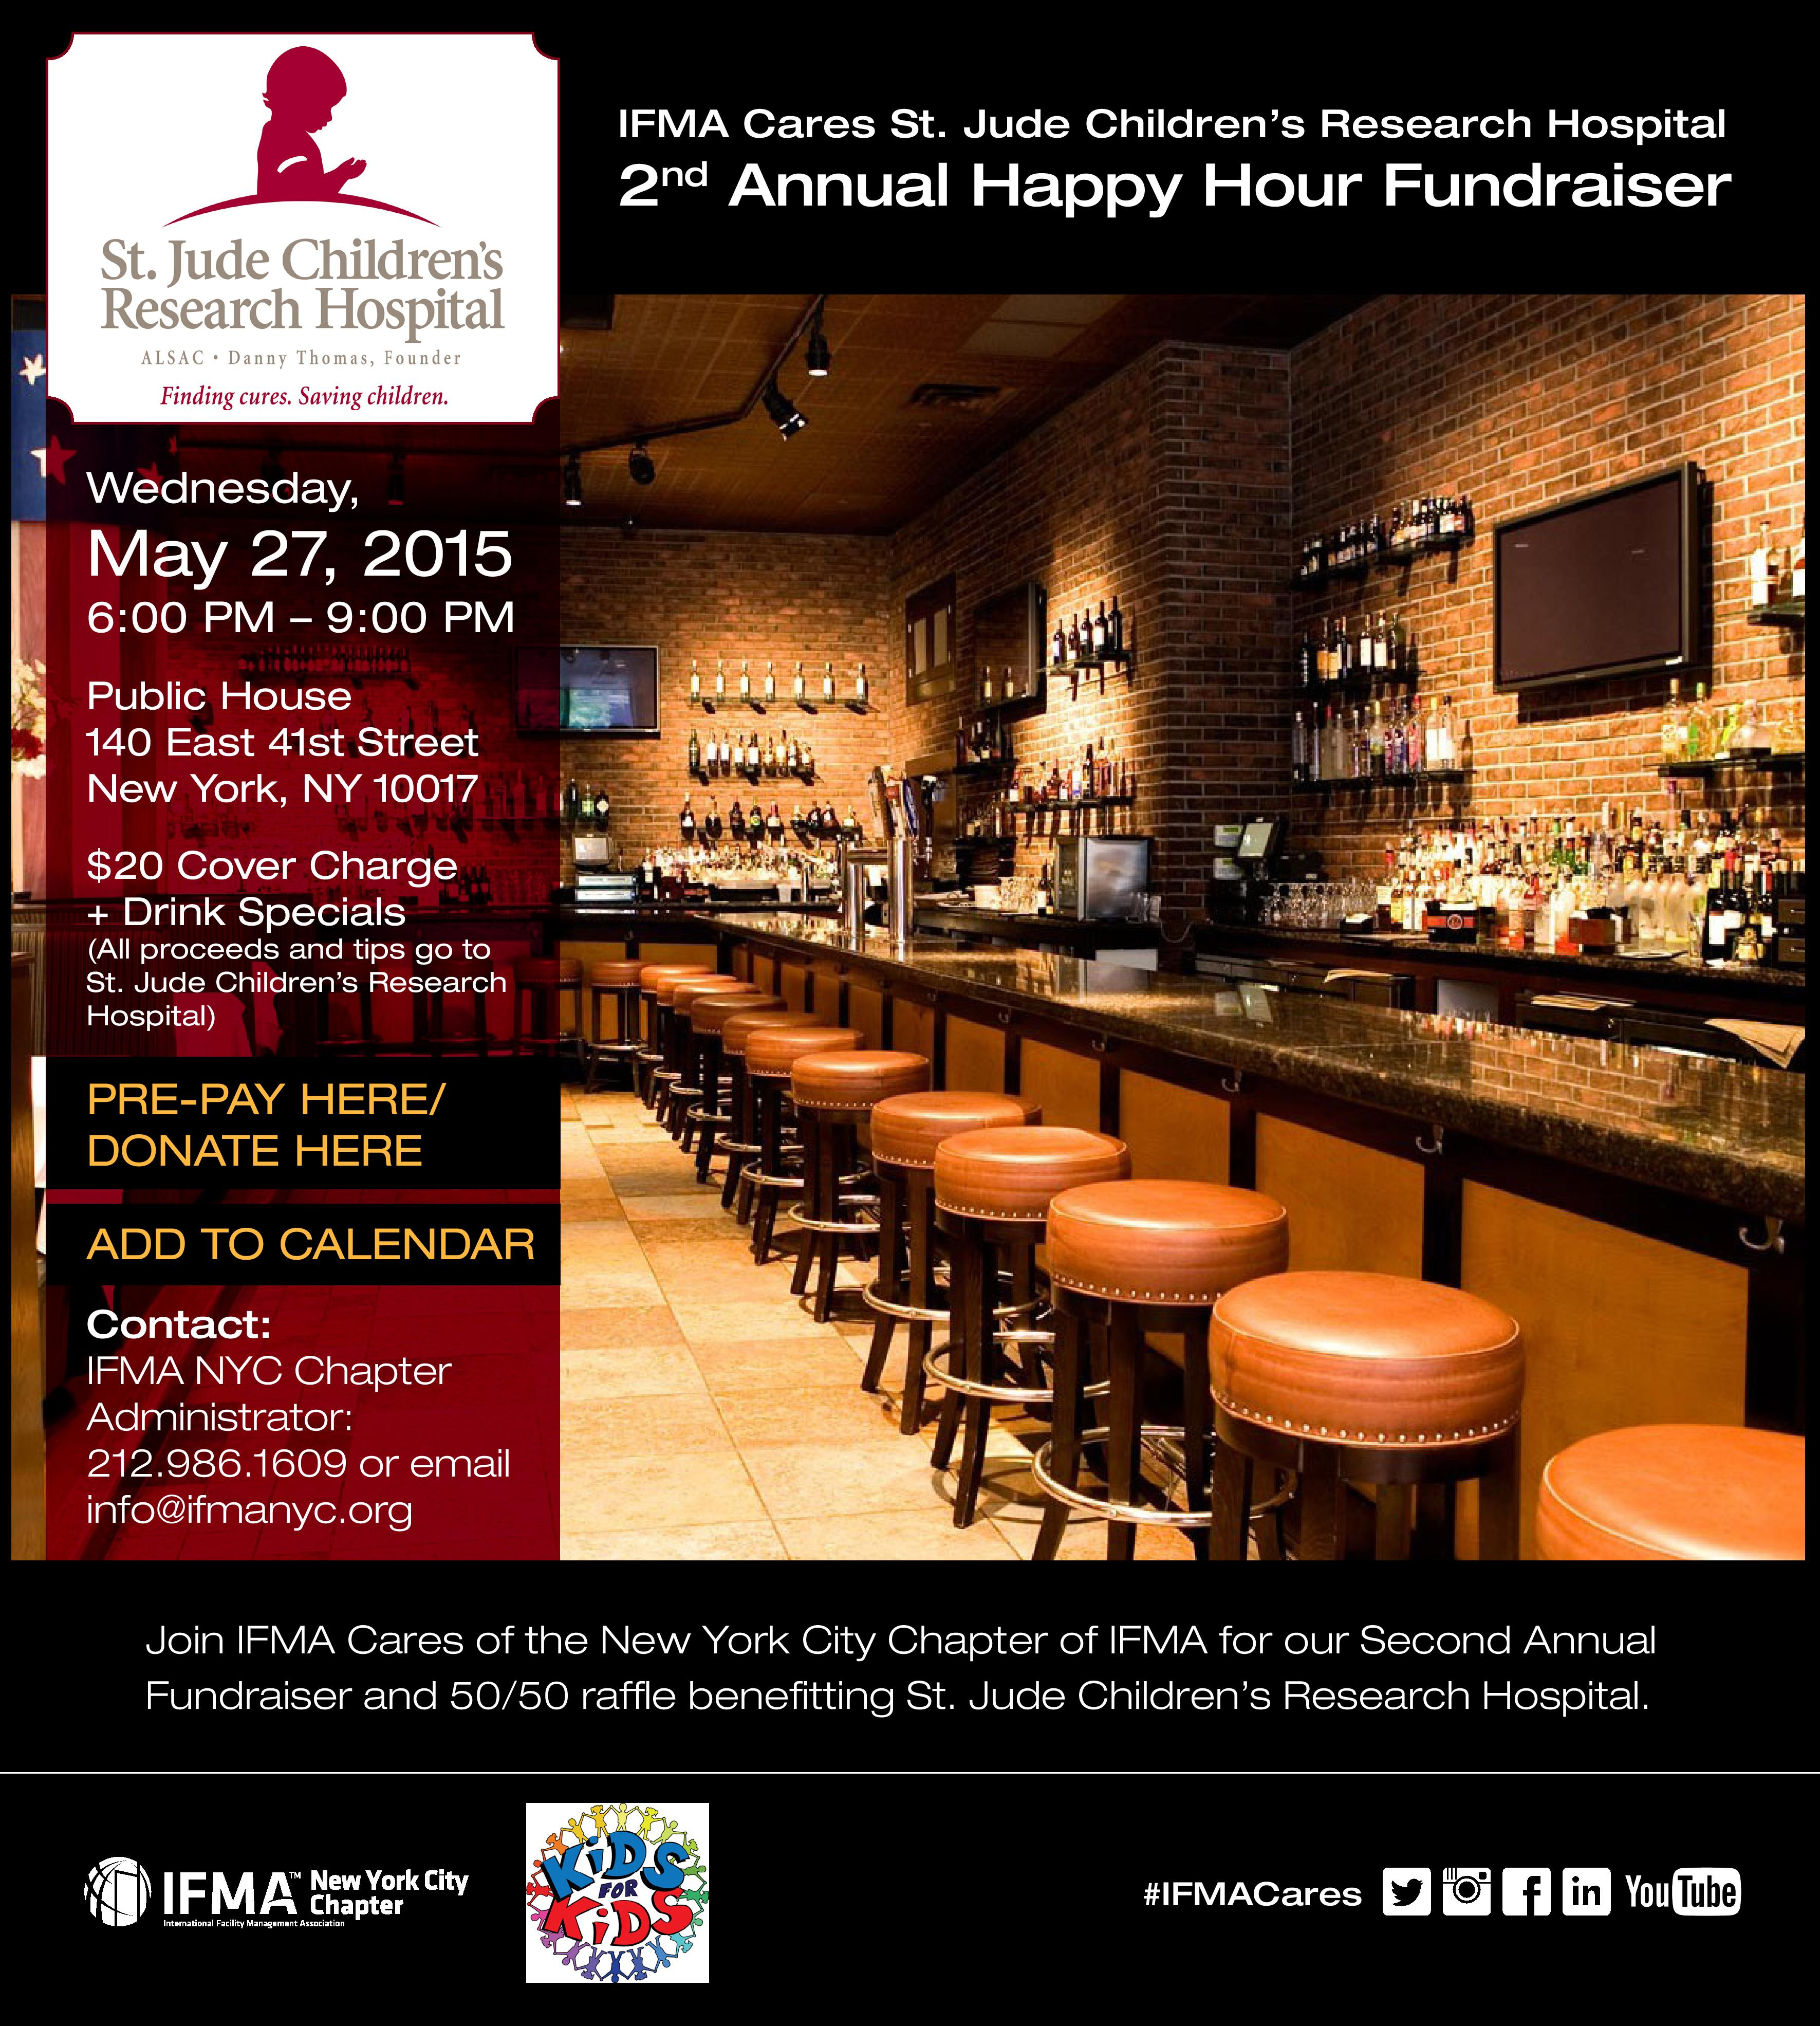 IFMA Cares - St. Jude Children s Research Hospital Happy Hour Invitation...-page-001